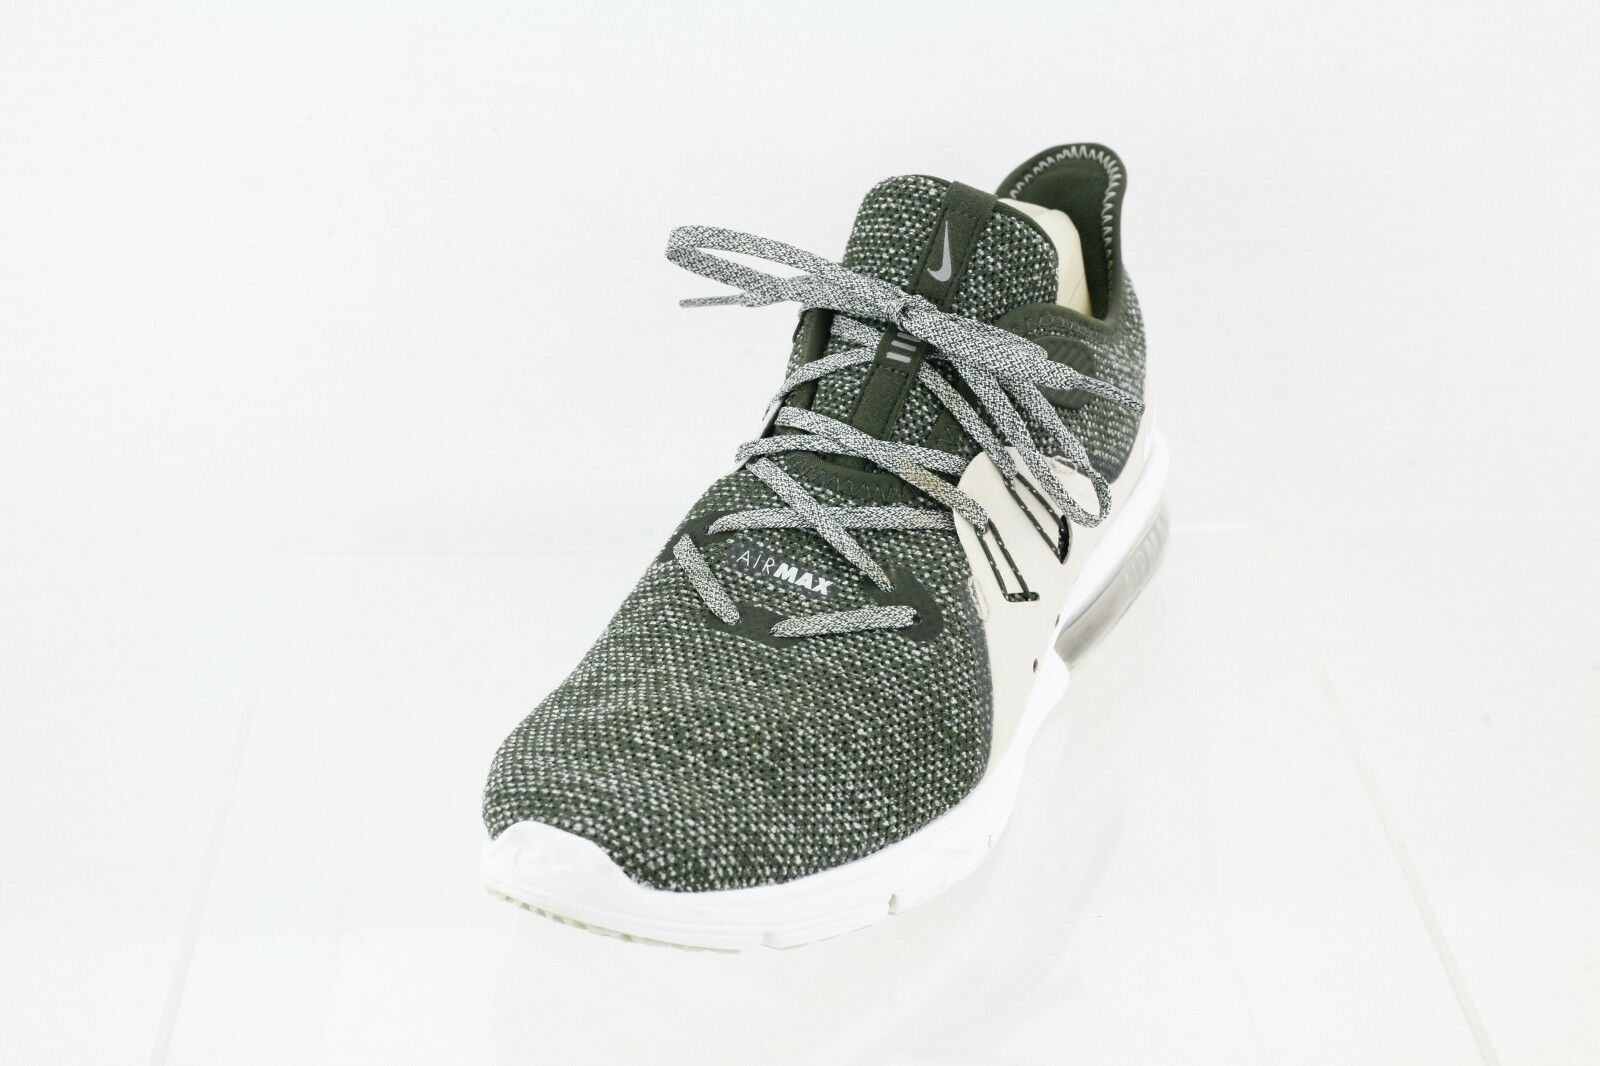 aac92bf5fb Nike Air Max Sequent 3 Womens 908993-300 Sequoia Knit Running Shoes ...